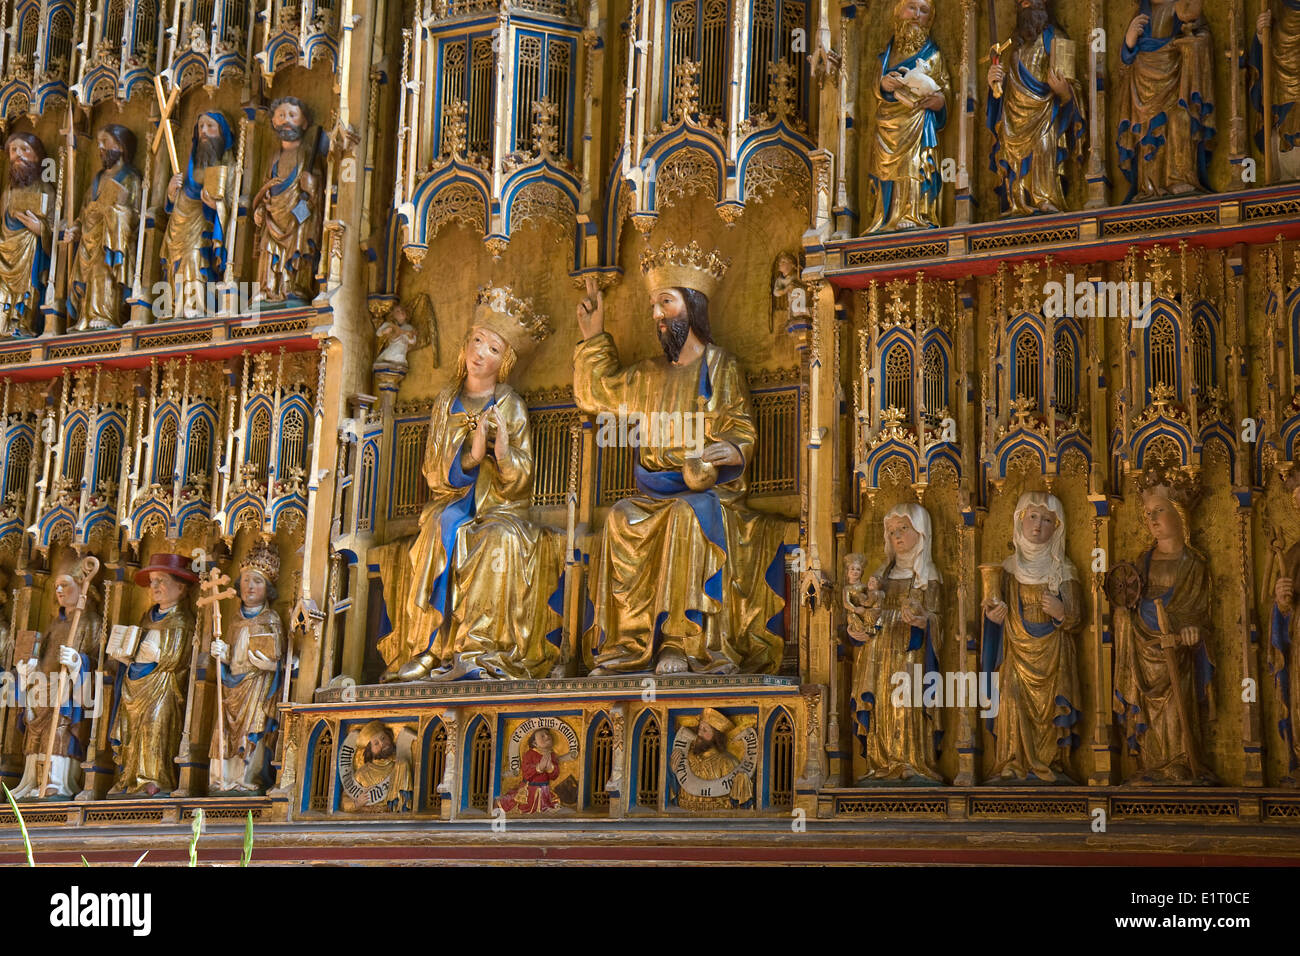 Europe, Germany, Mecklenburg-Western Pomerania, Wismar, St. Nicholas Church,interieur - Stock Image